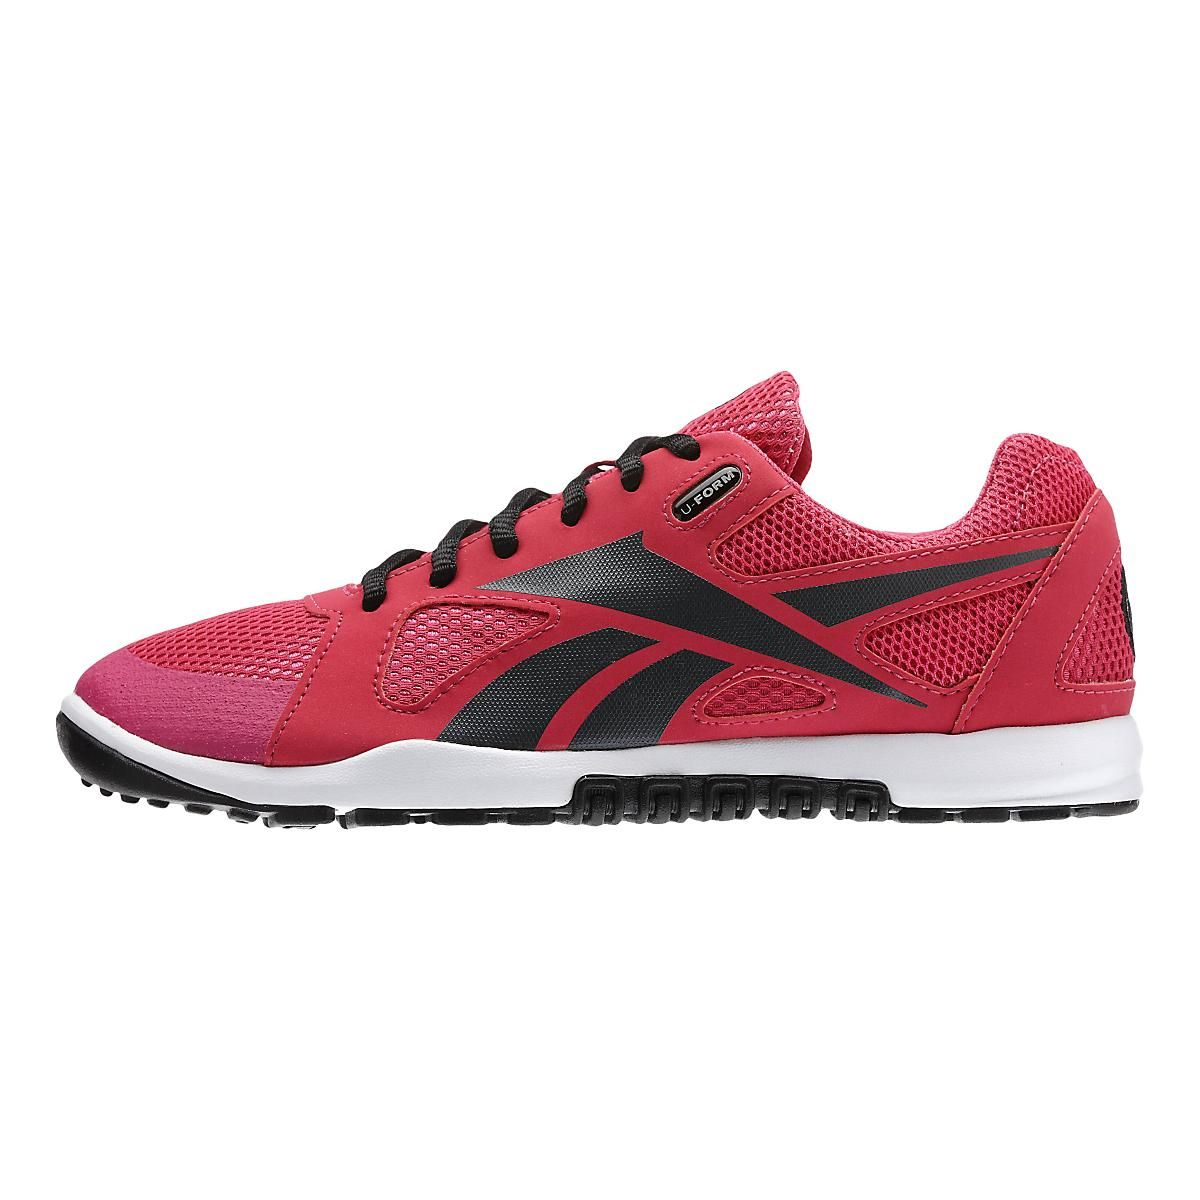 detailed look 306ea 2ad0f Original Nano!!! womens Reebok CrossFit Nano U-Form...love this shoe for  crossfitting